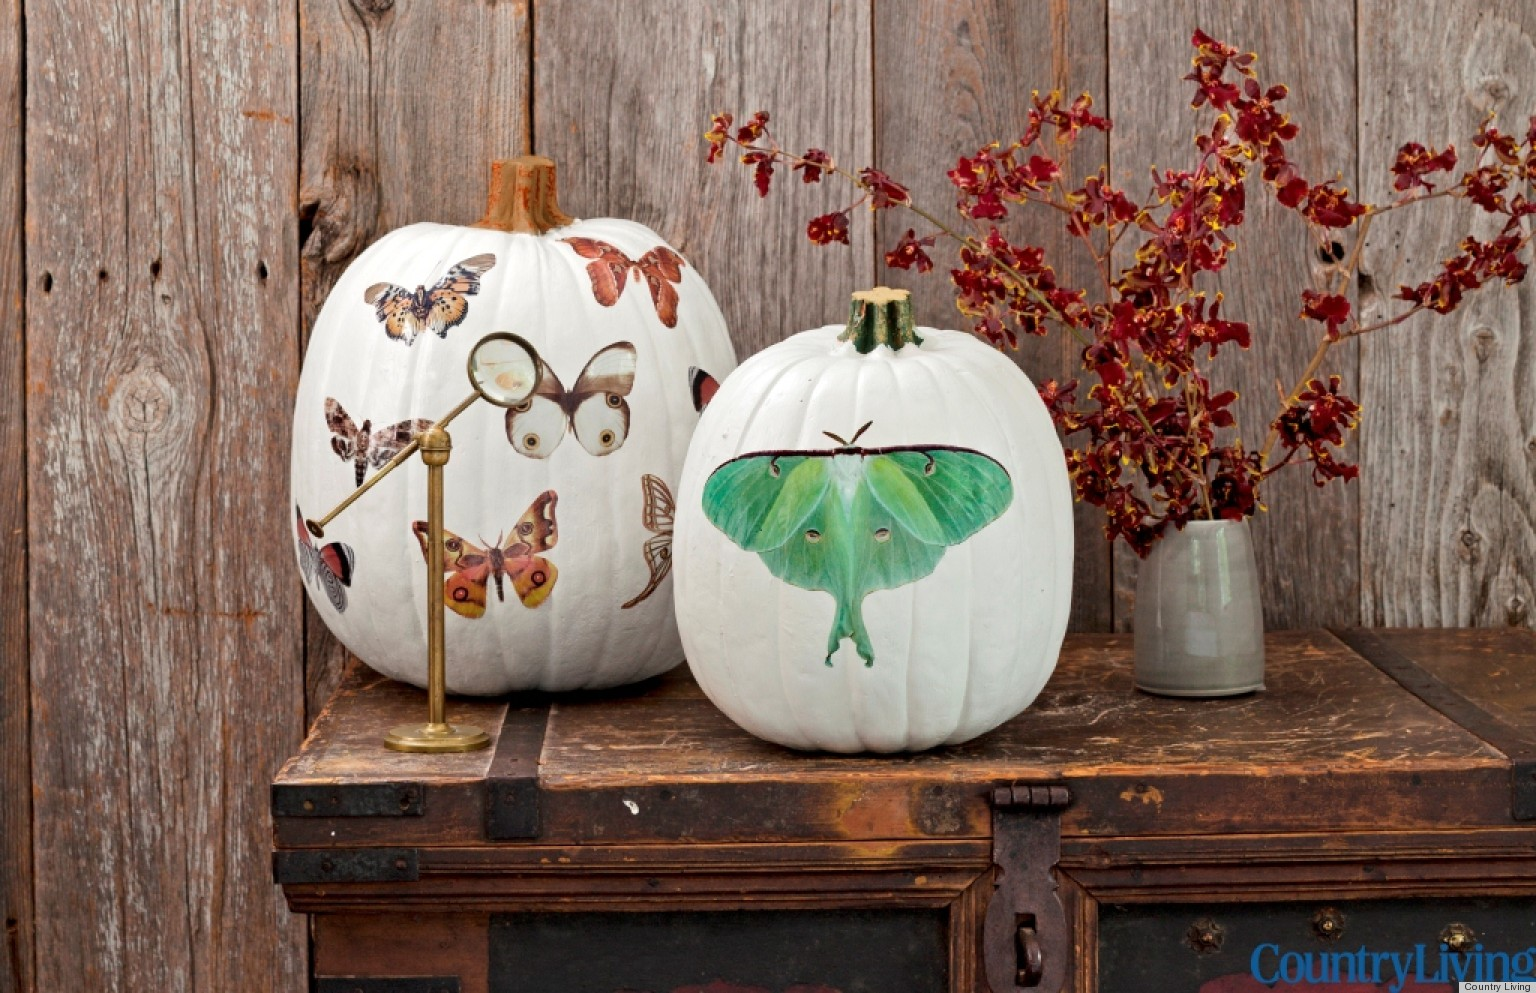 halloween decorations moth decal pumpkins from country living huffpost - Simple Homemade Halloween Decorations